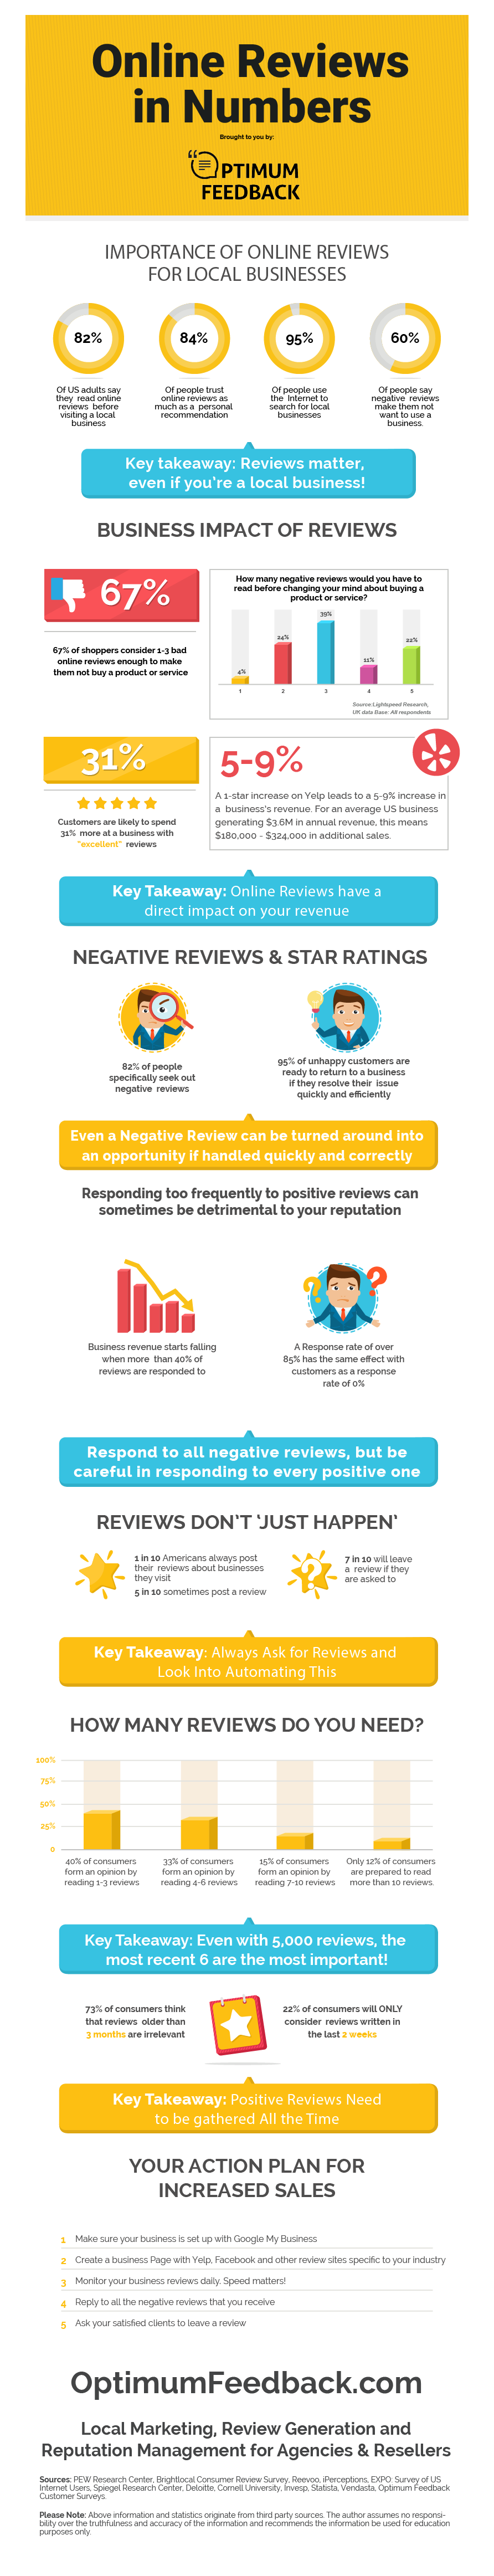 Online Reviews and Reputation for Local Business in 2019